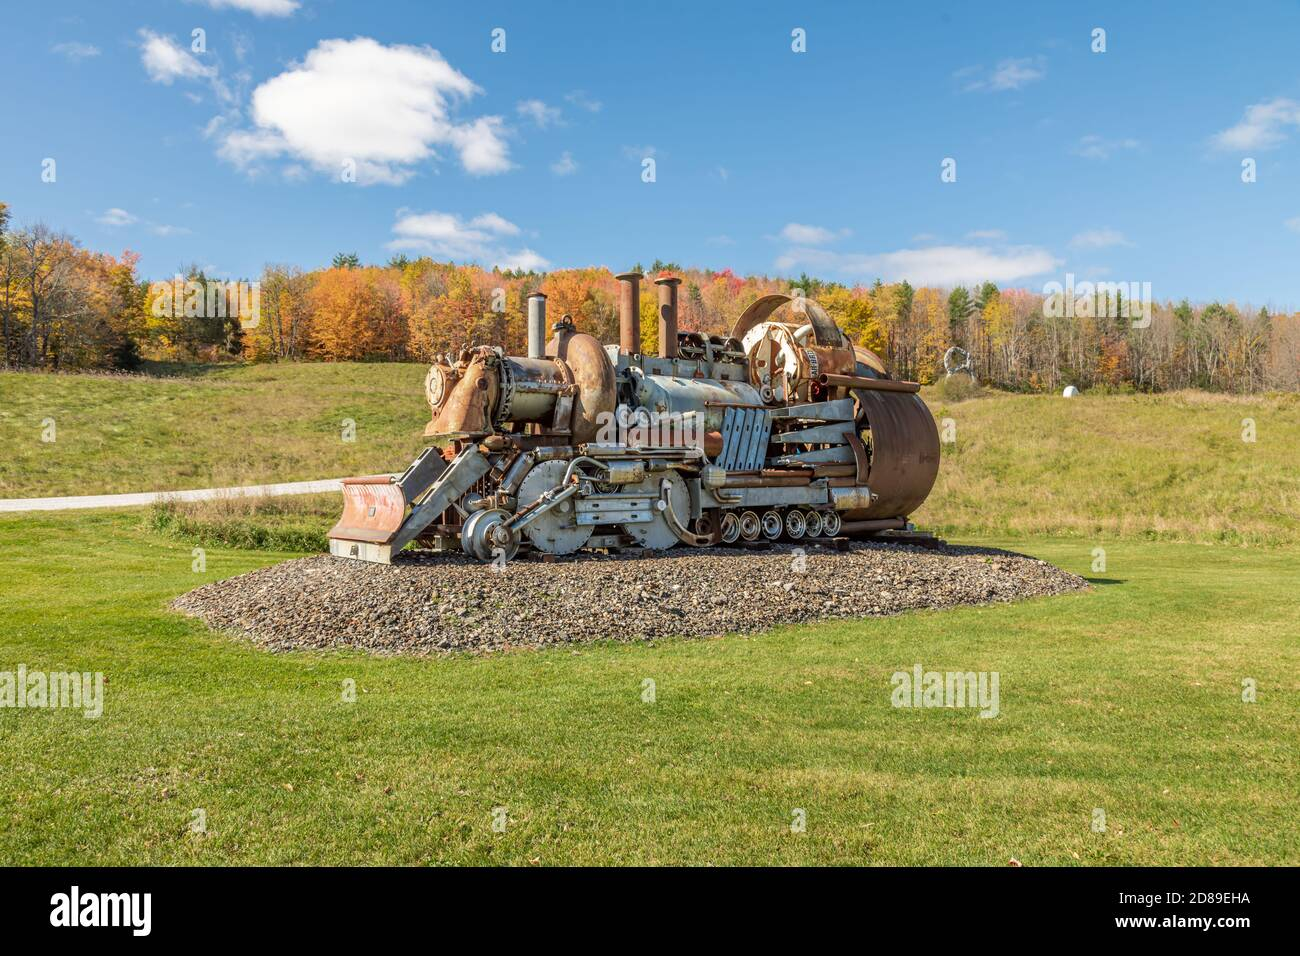 Full size steam locomotive made of junk by Guohua Xu in West Rutland, Vermont Stock Photo